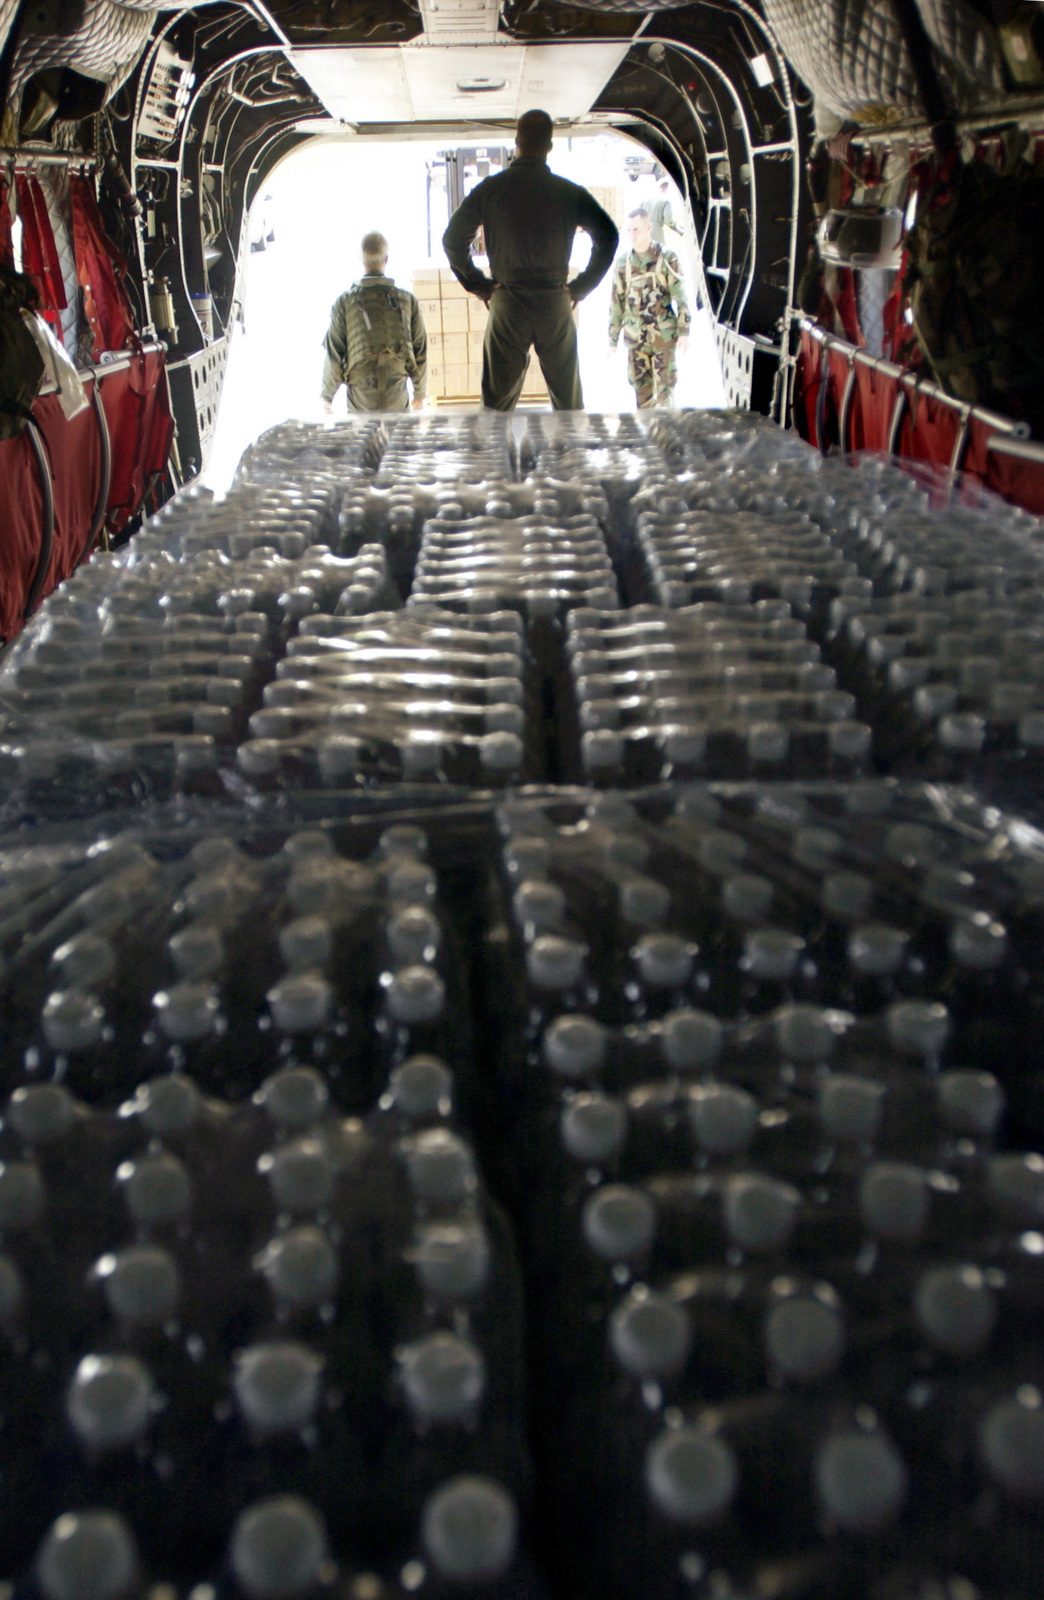 US Army (USA) Sergeant (SGT) Curt Bowlins prepares to offload Meals Ready to Eat (MRE) and bottled water in Liberty, Texas (TX), in support of the Hurricane Rita recovery. SGT Bowlins is a Crew CHIEF with Bravo Company, 5th Battalion, 159th Aviation Regiment (AR), from Fort Eustis, Virginia (VA). (SUBSTANDARD)